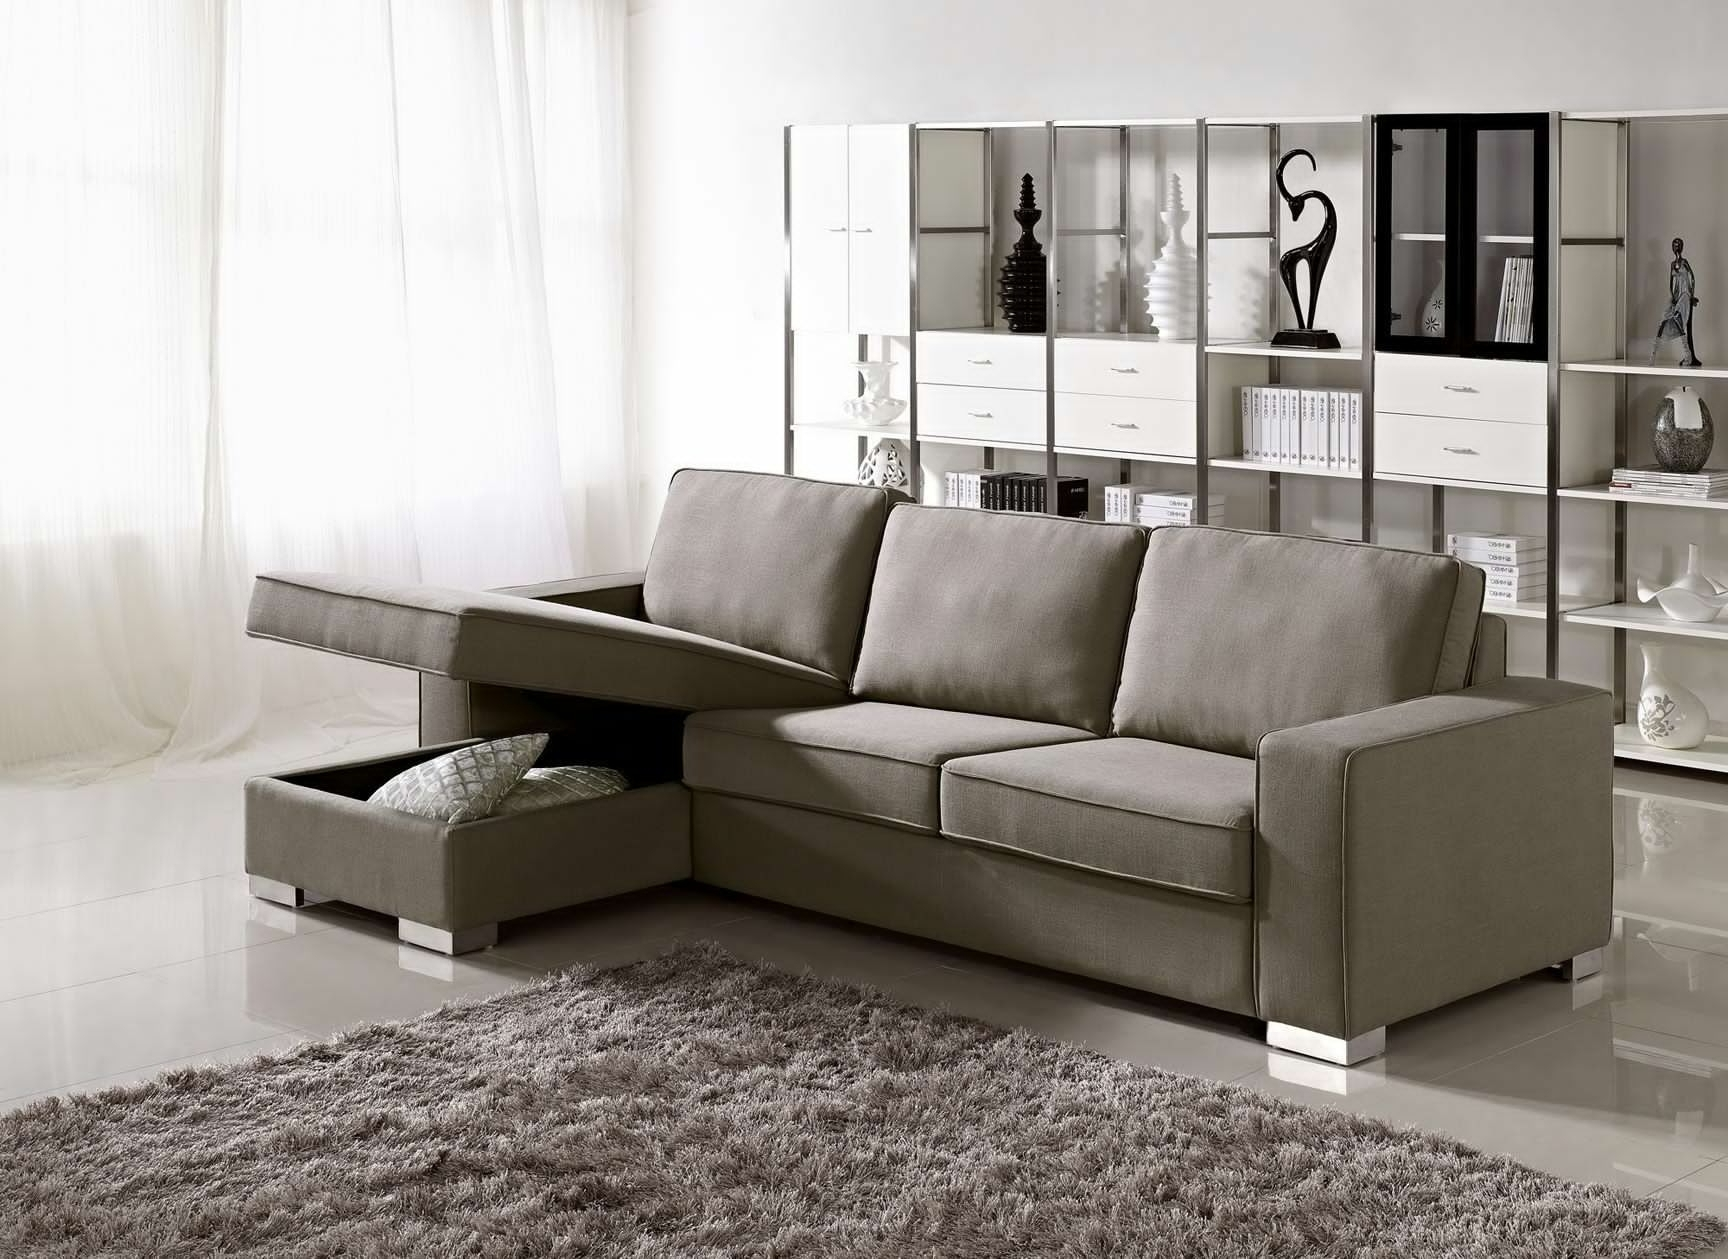 Most Recently Released Sectional Sofa Design: Apartment Size Sectional Sofas Set Sale In Apartment Size Sofas (View 19 of 20)